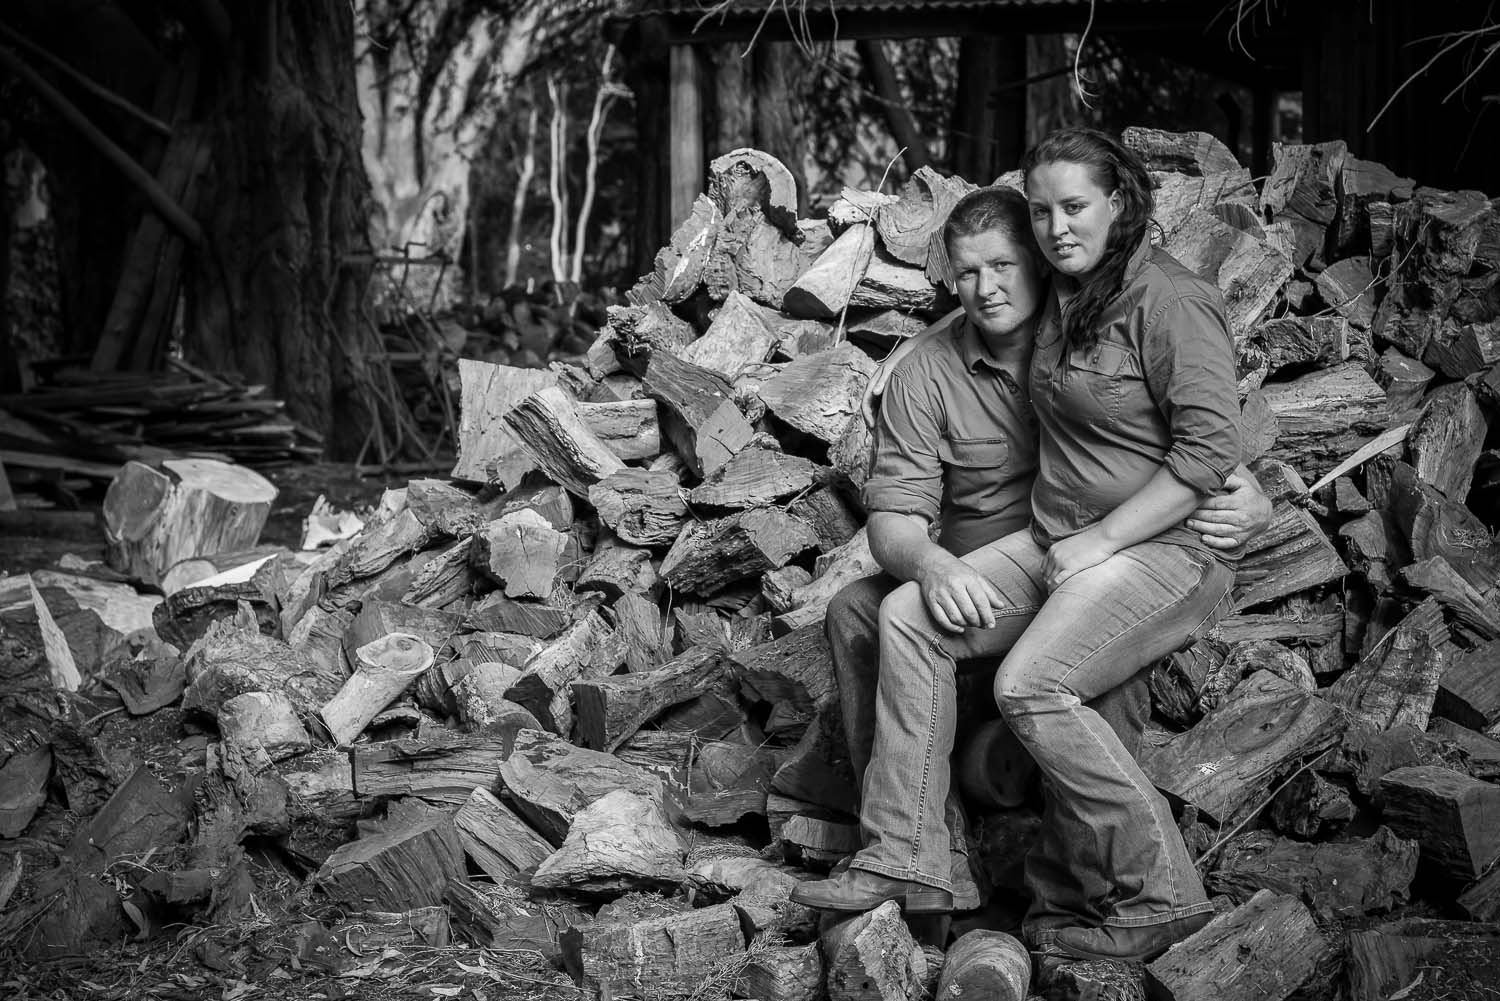 Couple pictured on wood pile